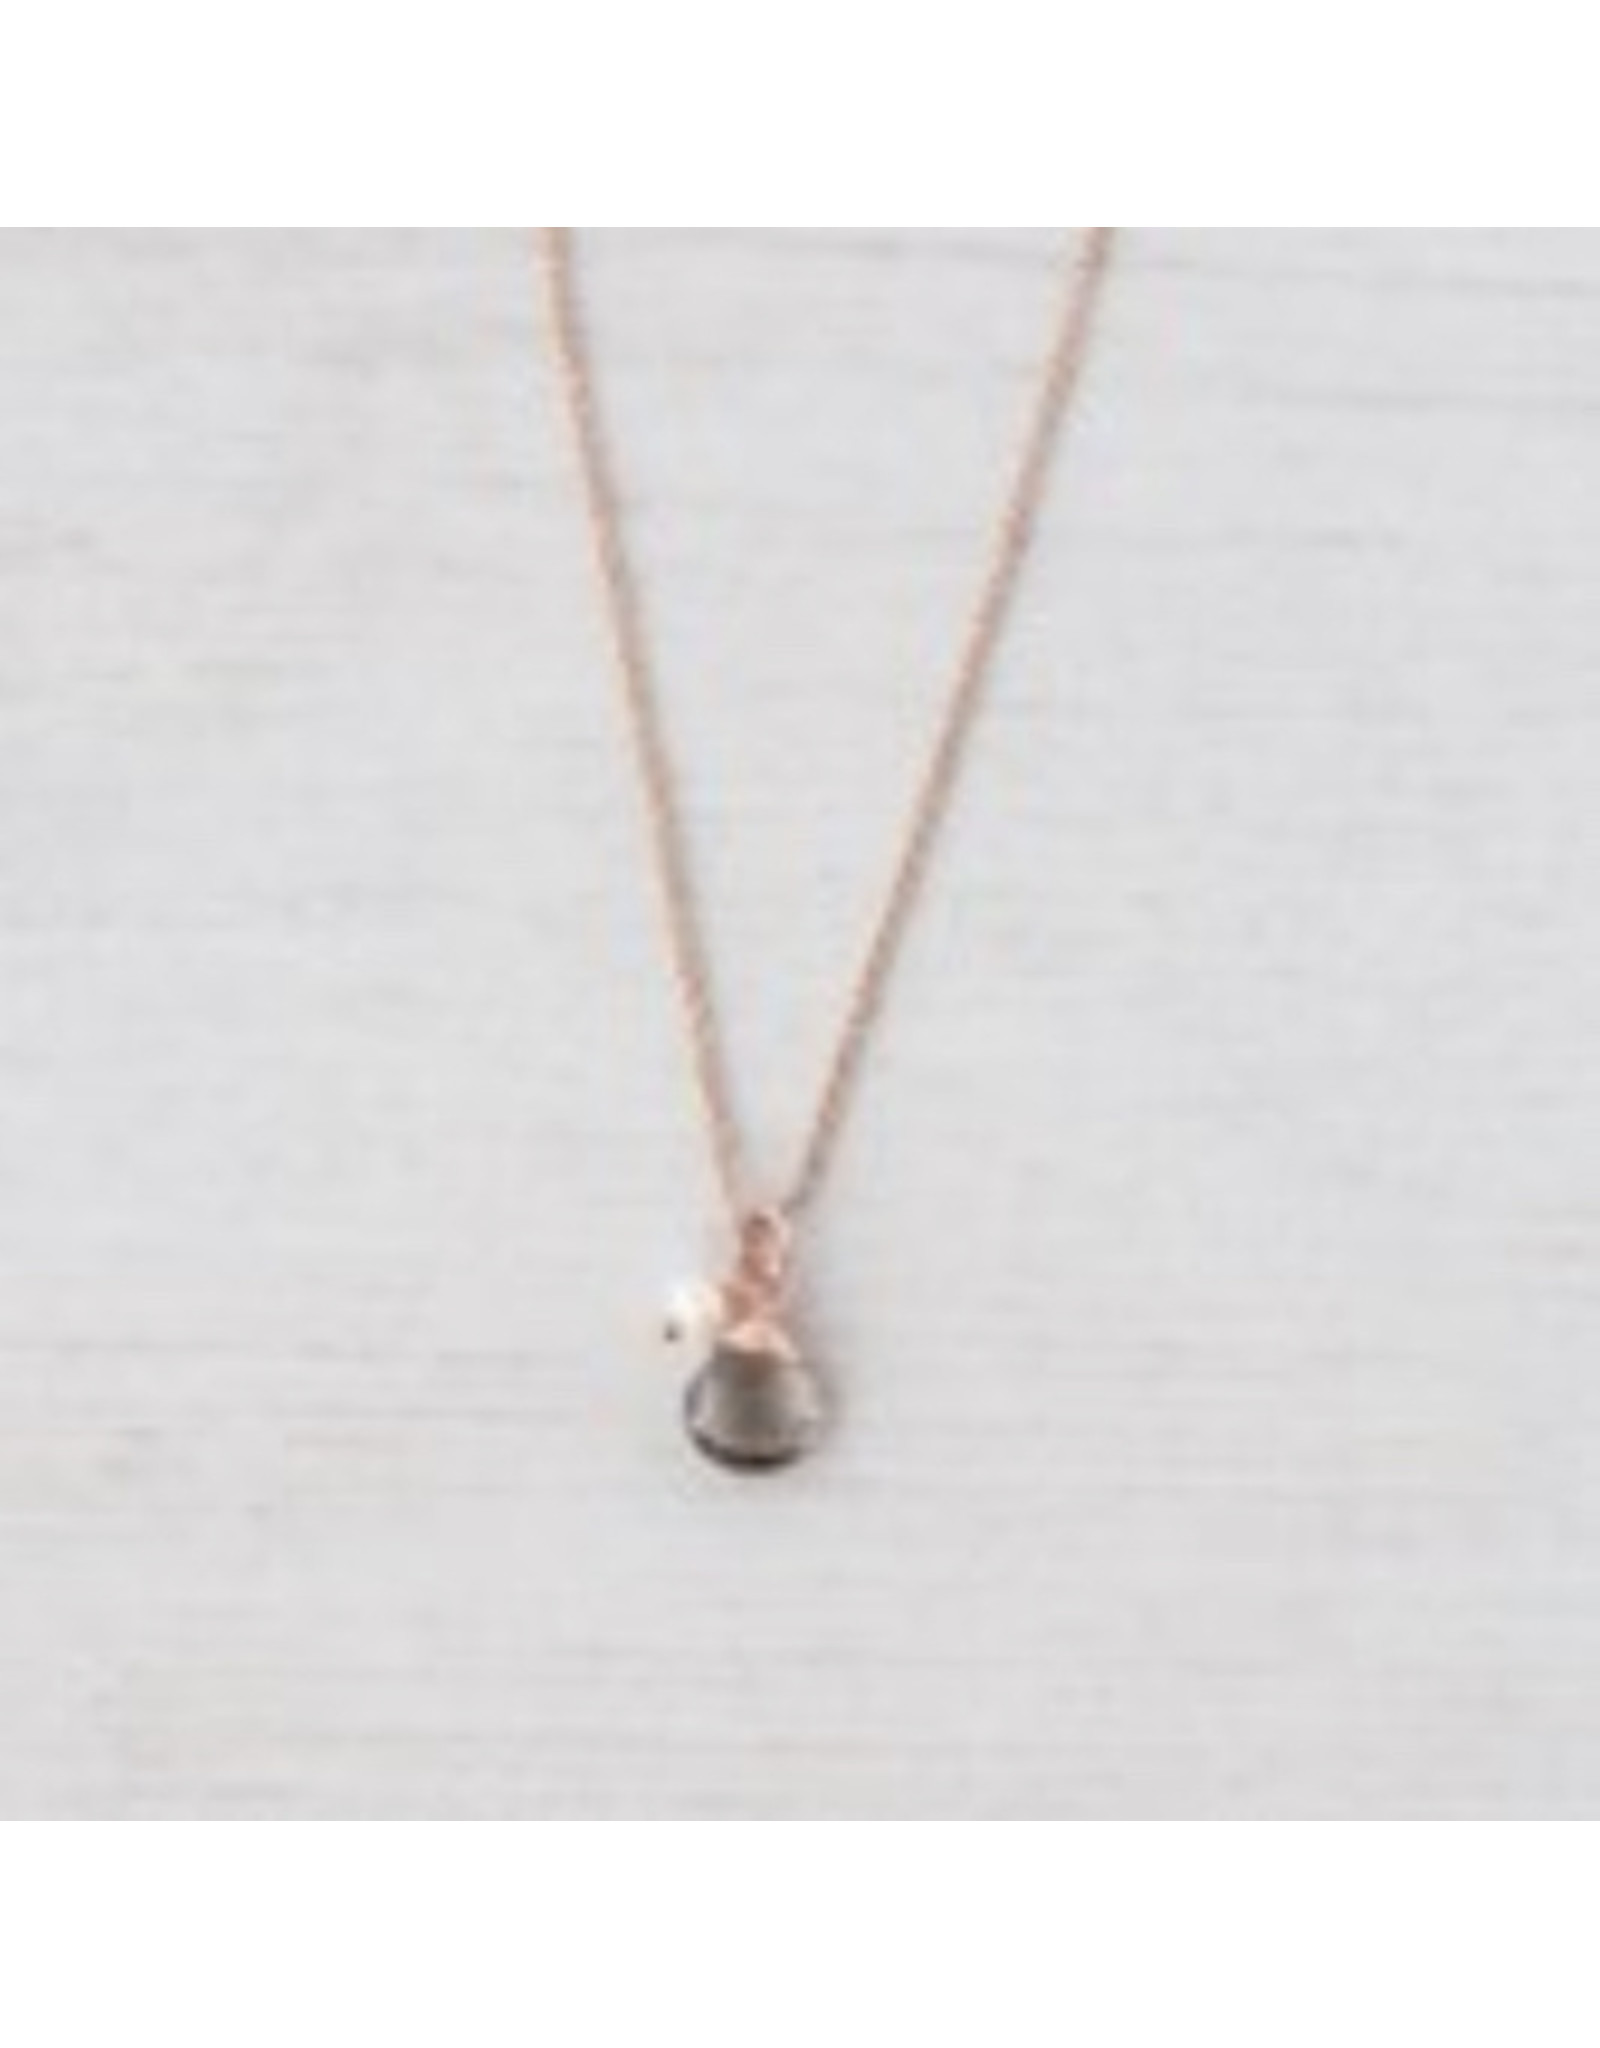 Glee jewelry Anna Necklace/Rose Gold/Smoke/White Pearl